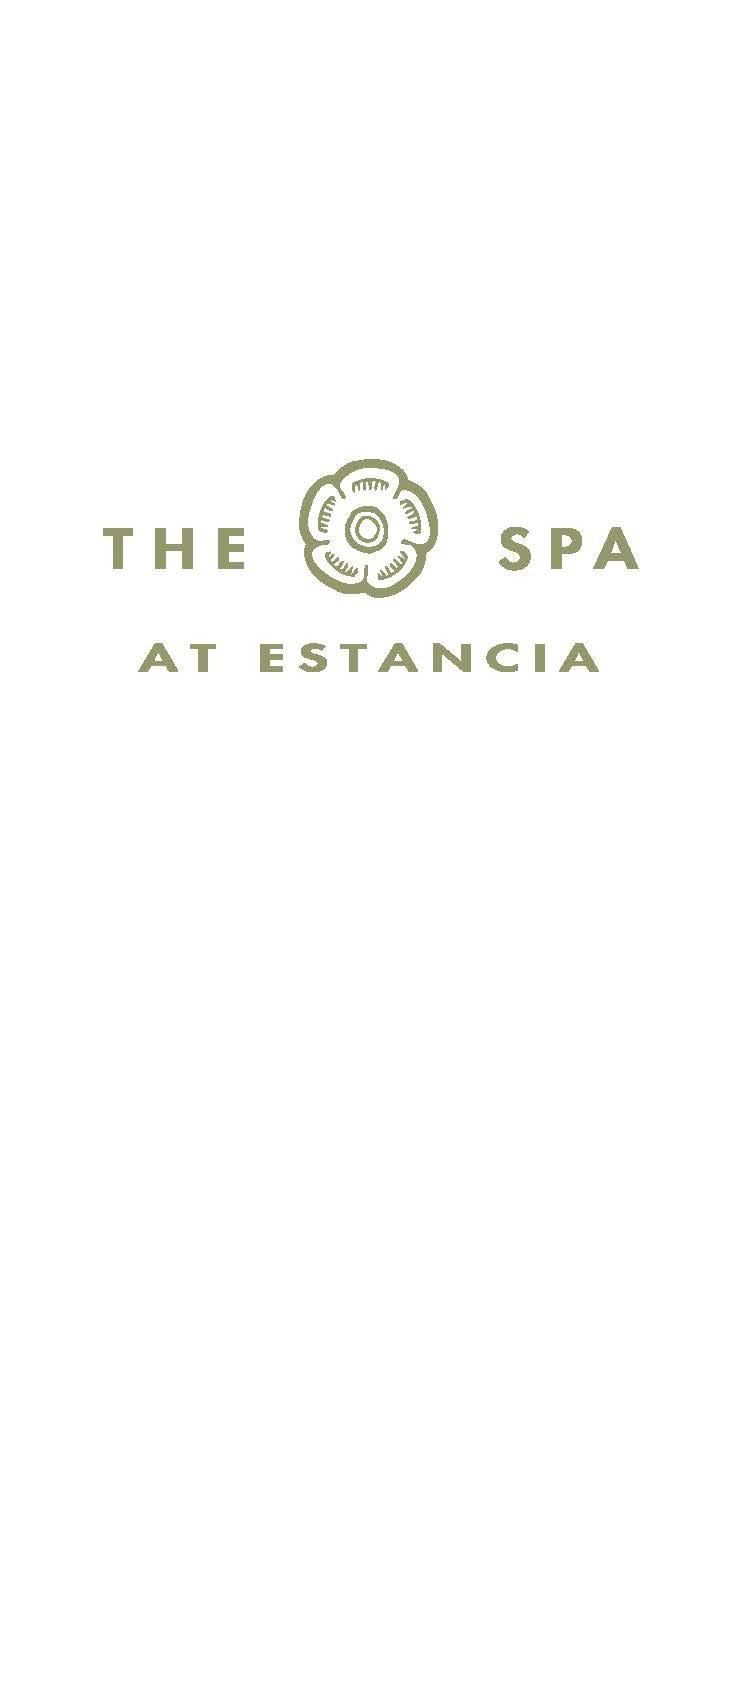 THE ~ SPA